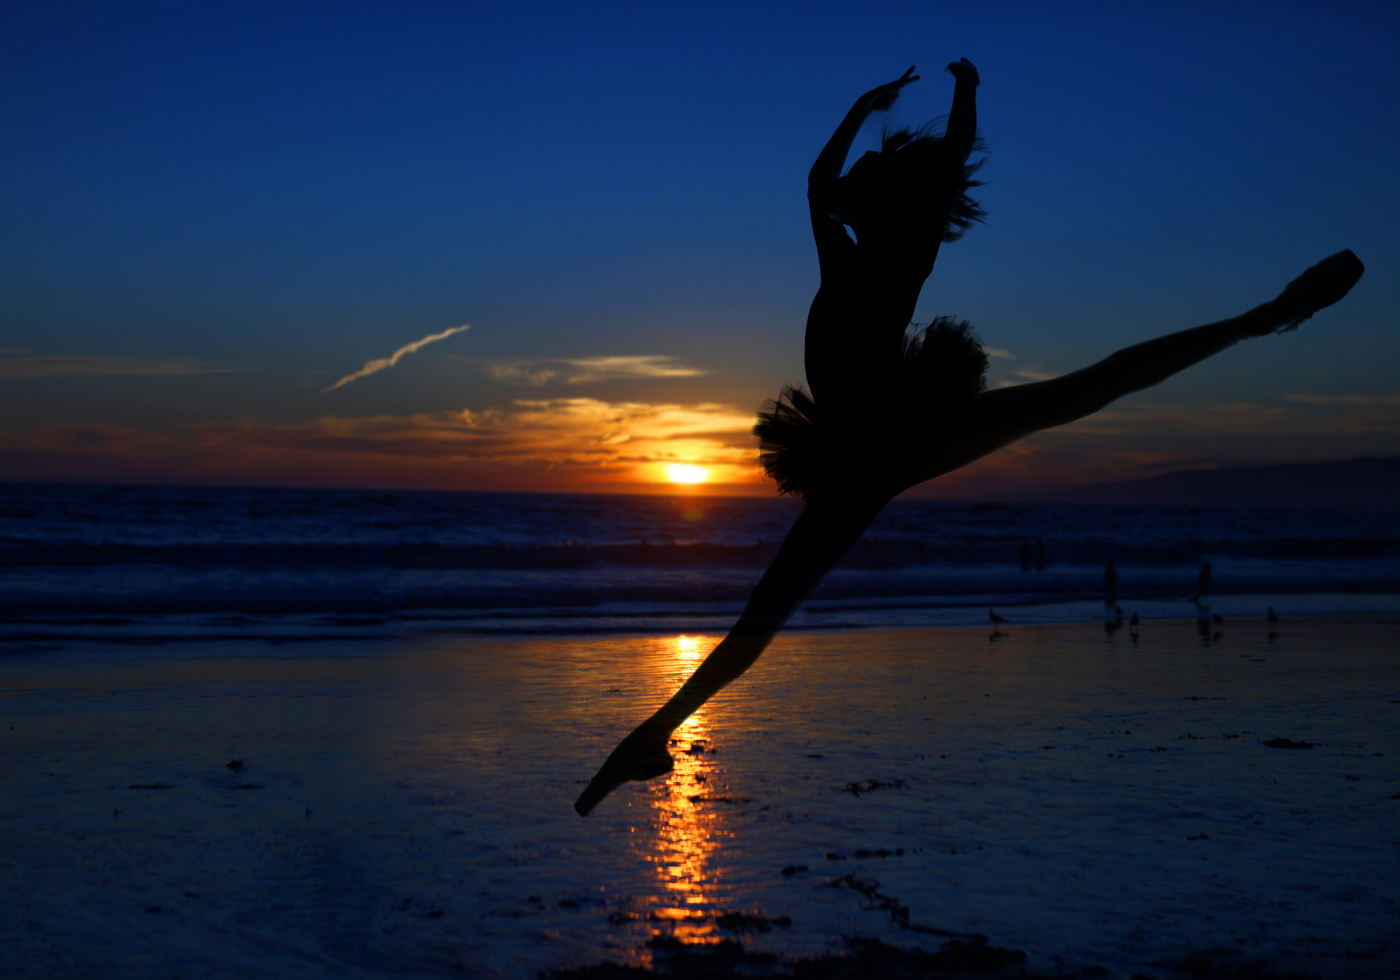 Silhouette of a ballerina pirouetting on a beach in front of the sun setting over the ocean.